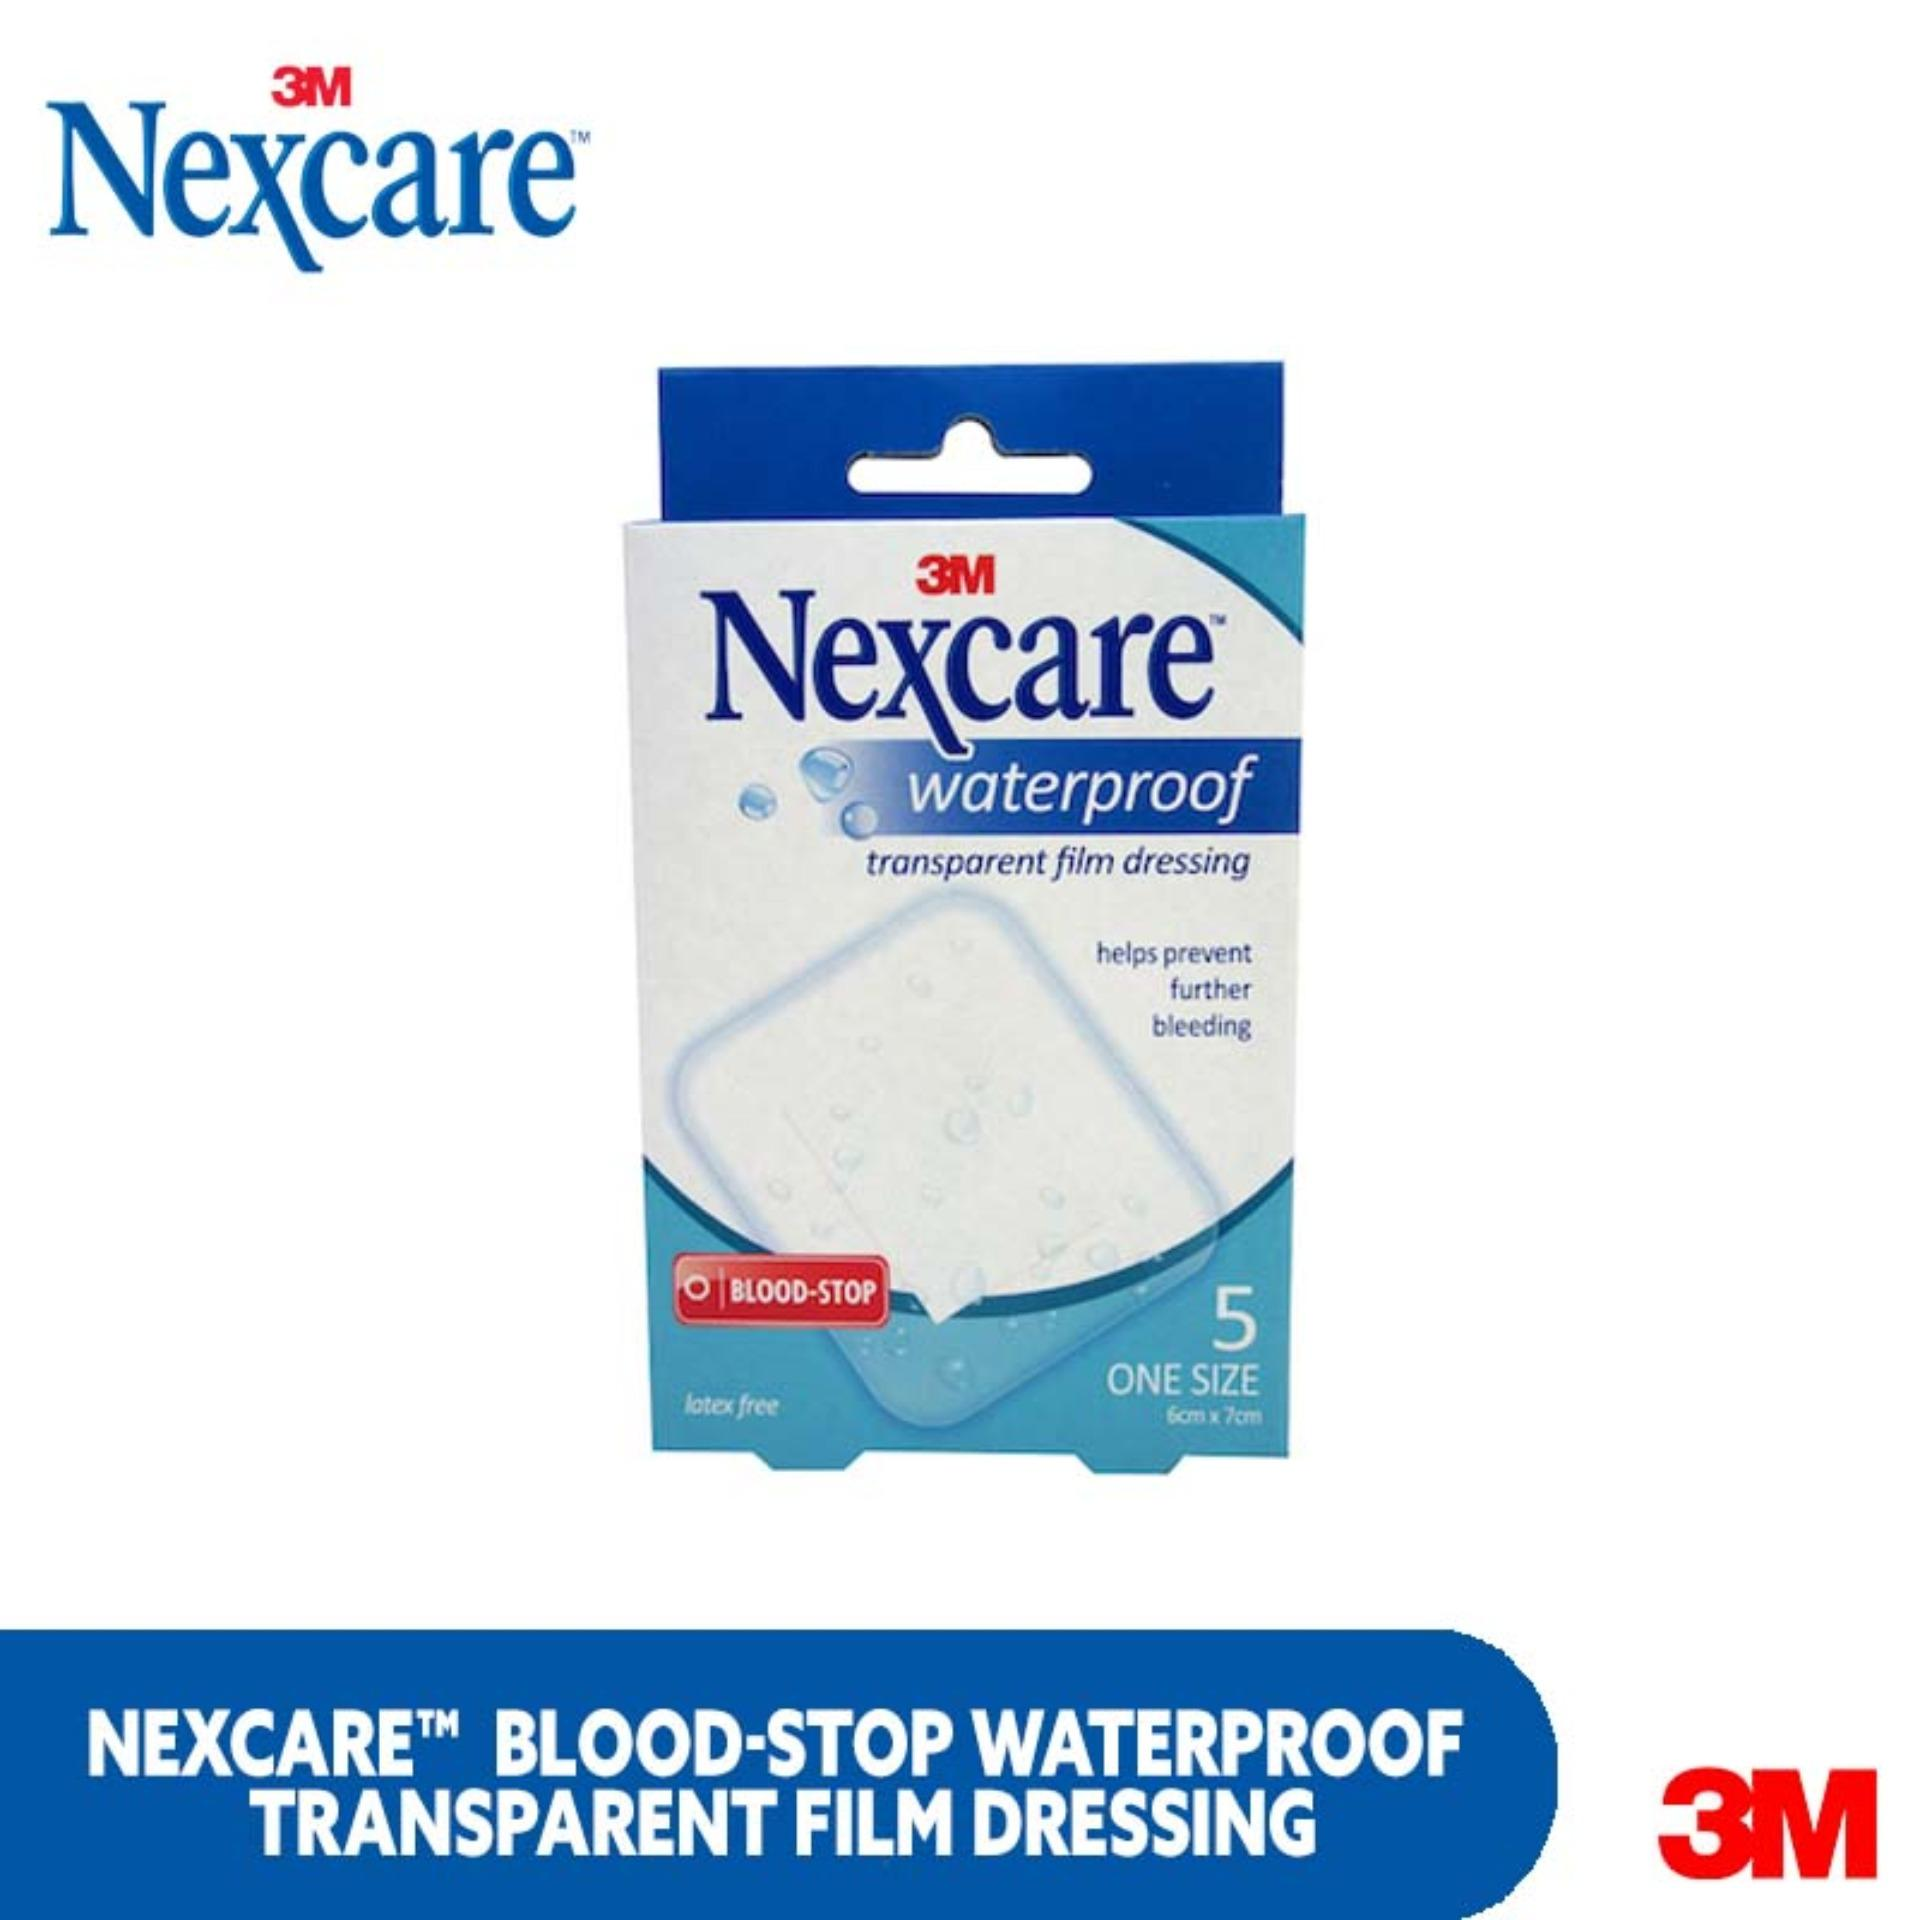 3m Nexcare Blood-Stop Waterproof Transparent Film Dressing 5s By 3m Official Store.